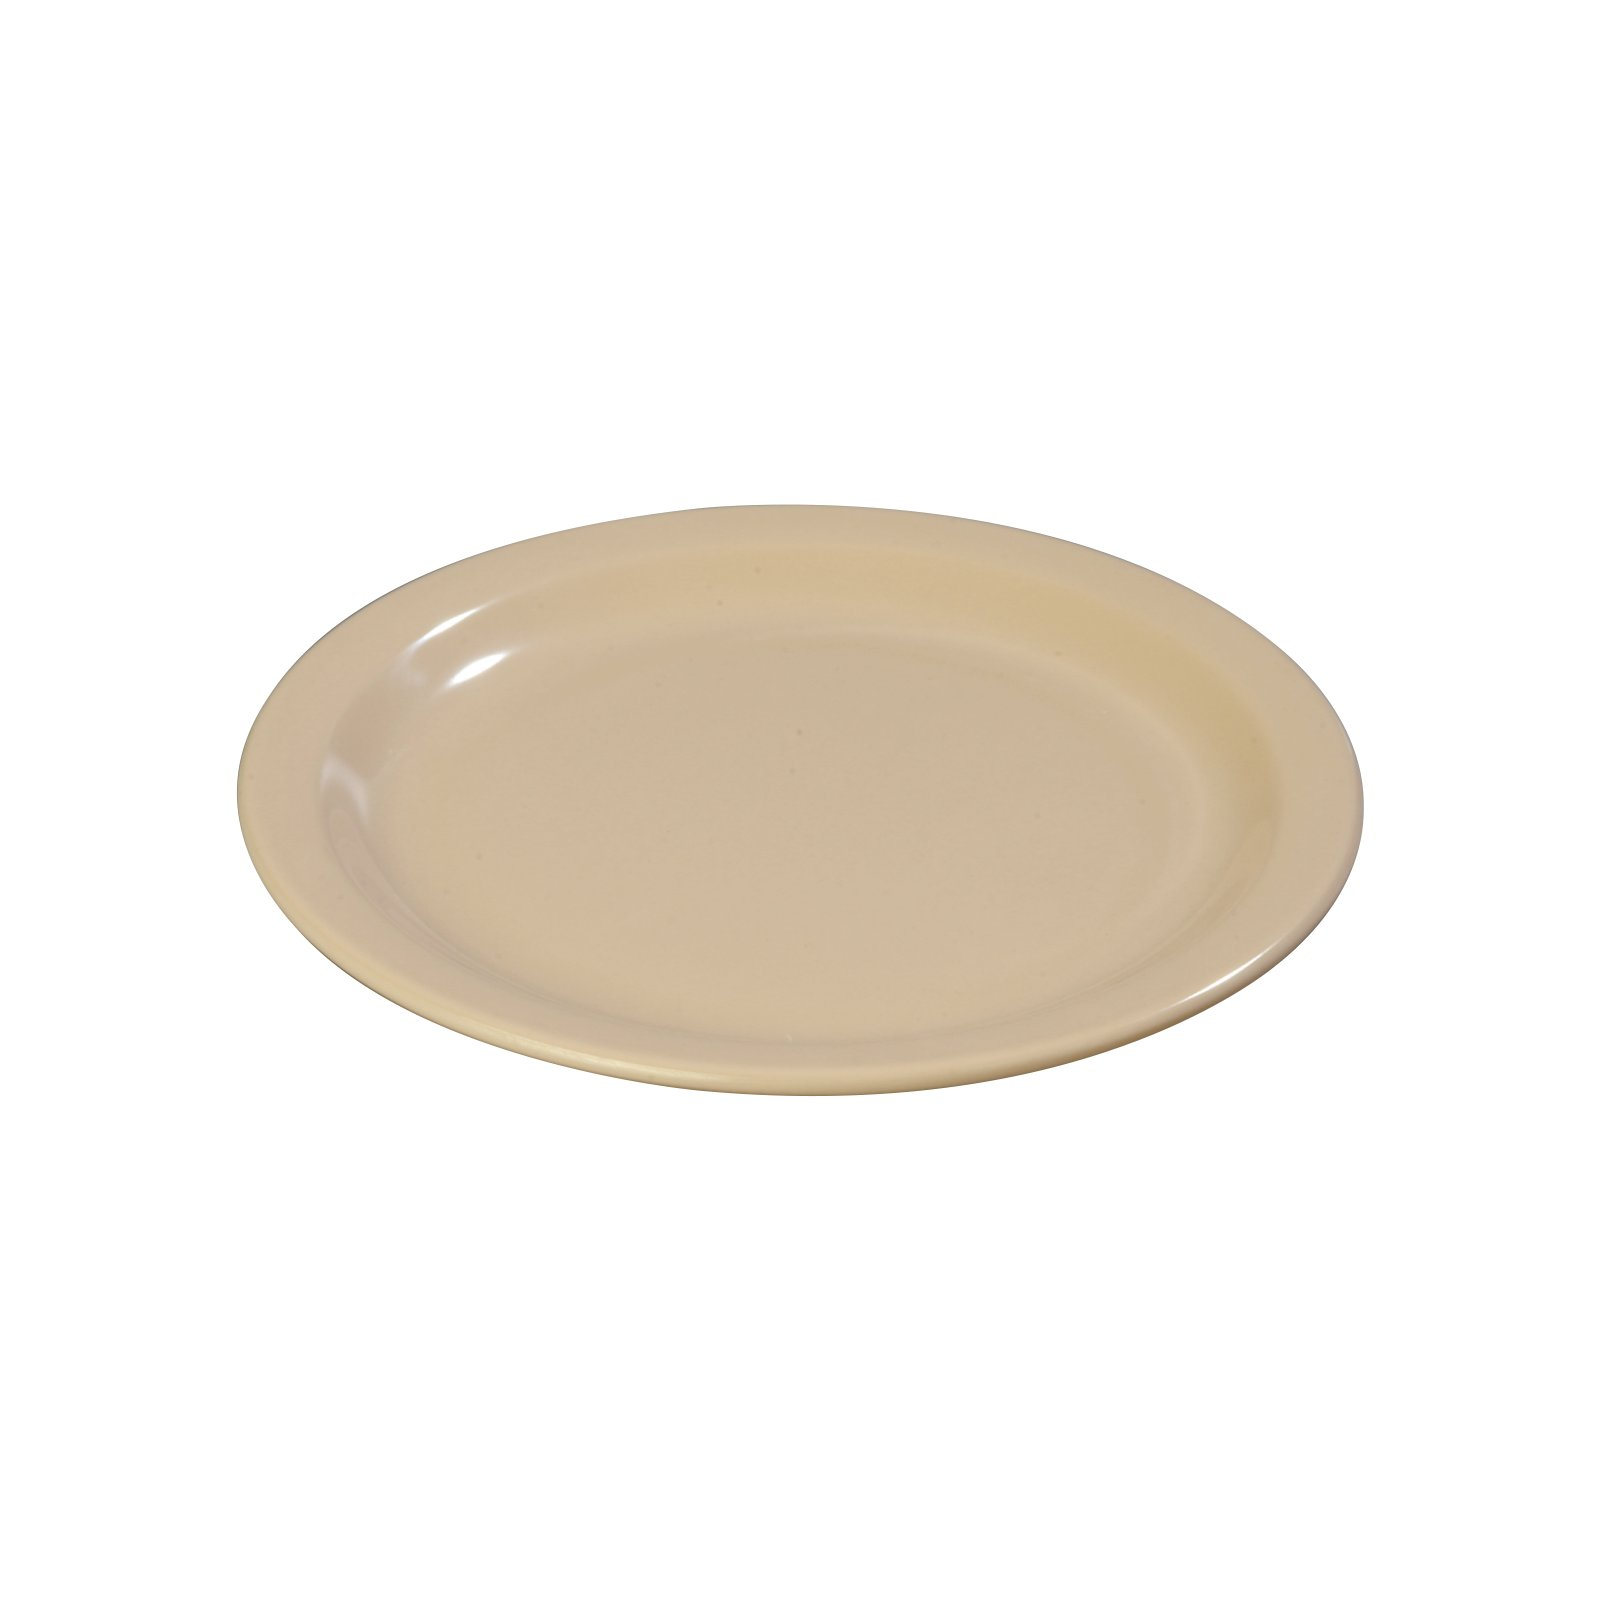 ... 4350425 - Dallas Ware® Melamine Pie Plate 6-1/2  - Tan  sc 1 st  Carlisle FoodService Products & 4350425 - Dallas Ware® Melamine Pie Plate 6-1/2